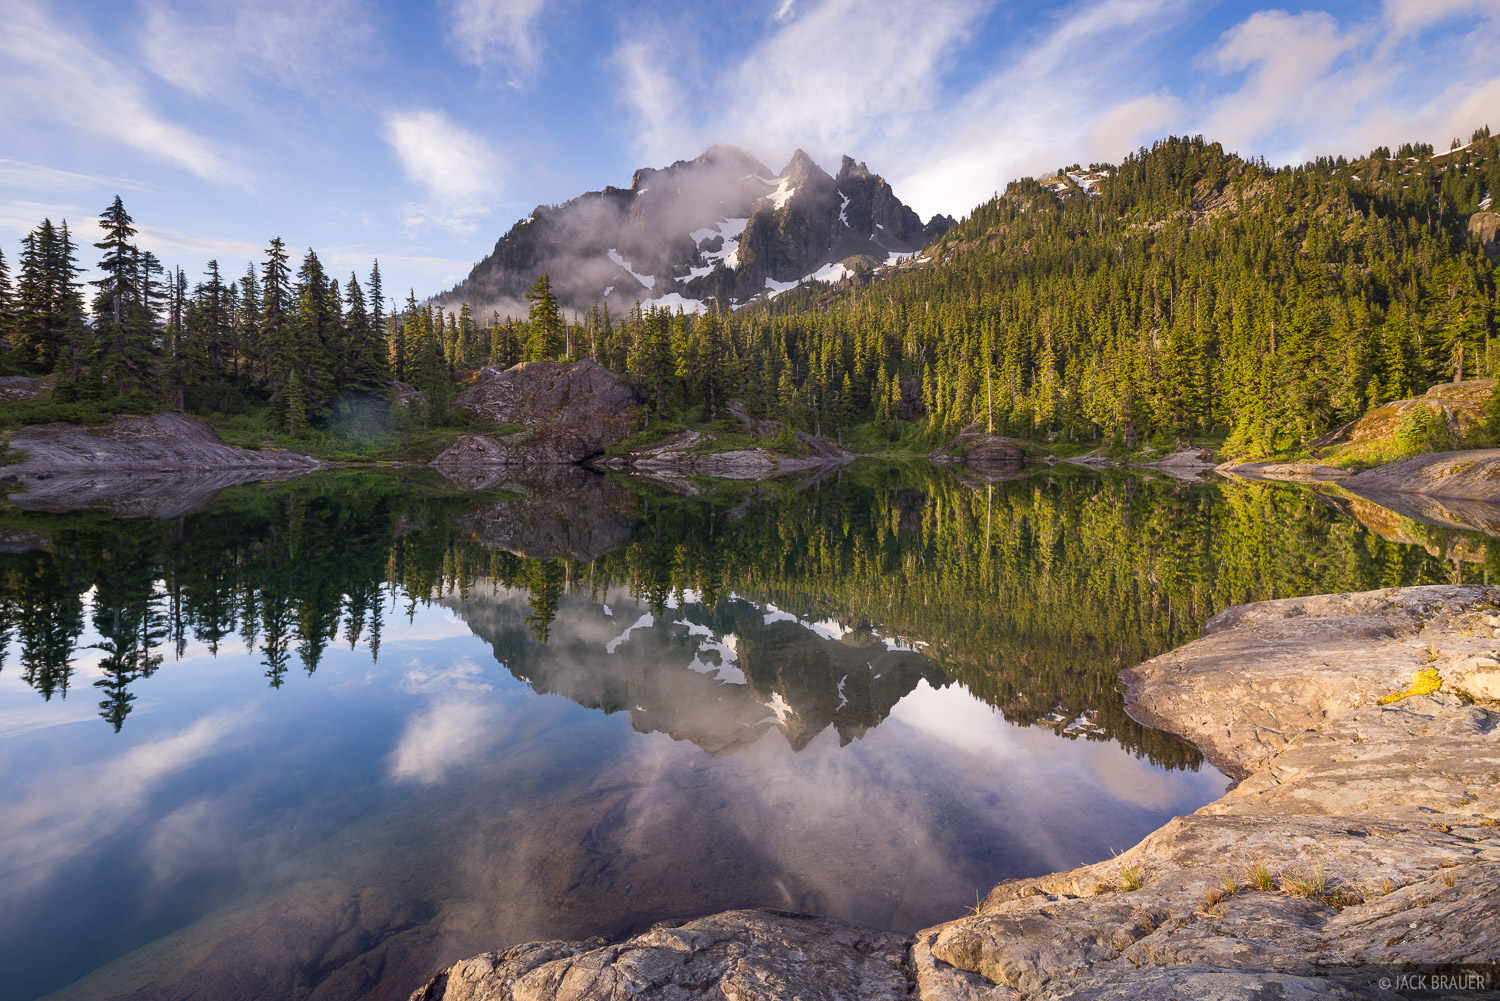 Alpine Lakes Wilderness, Spectacle Lake, Three Queens, Washington, Cascades